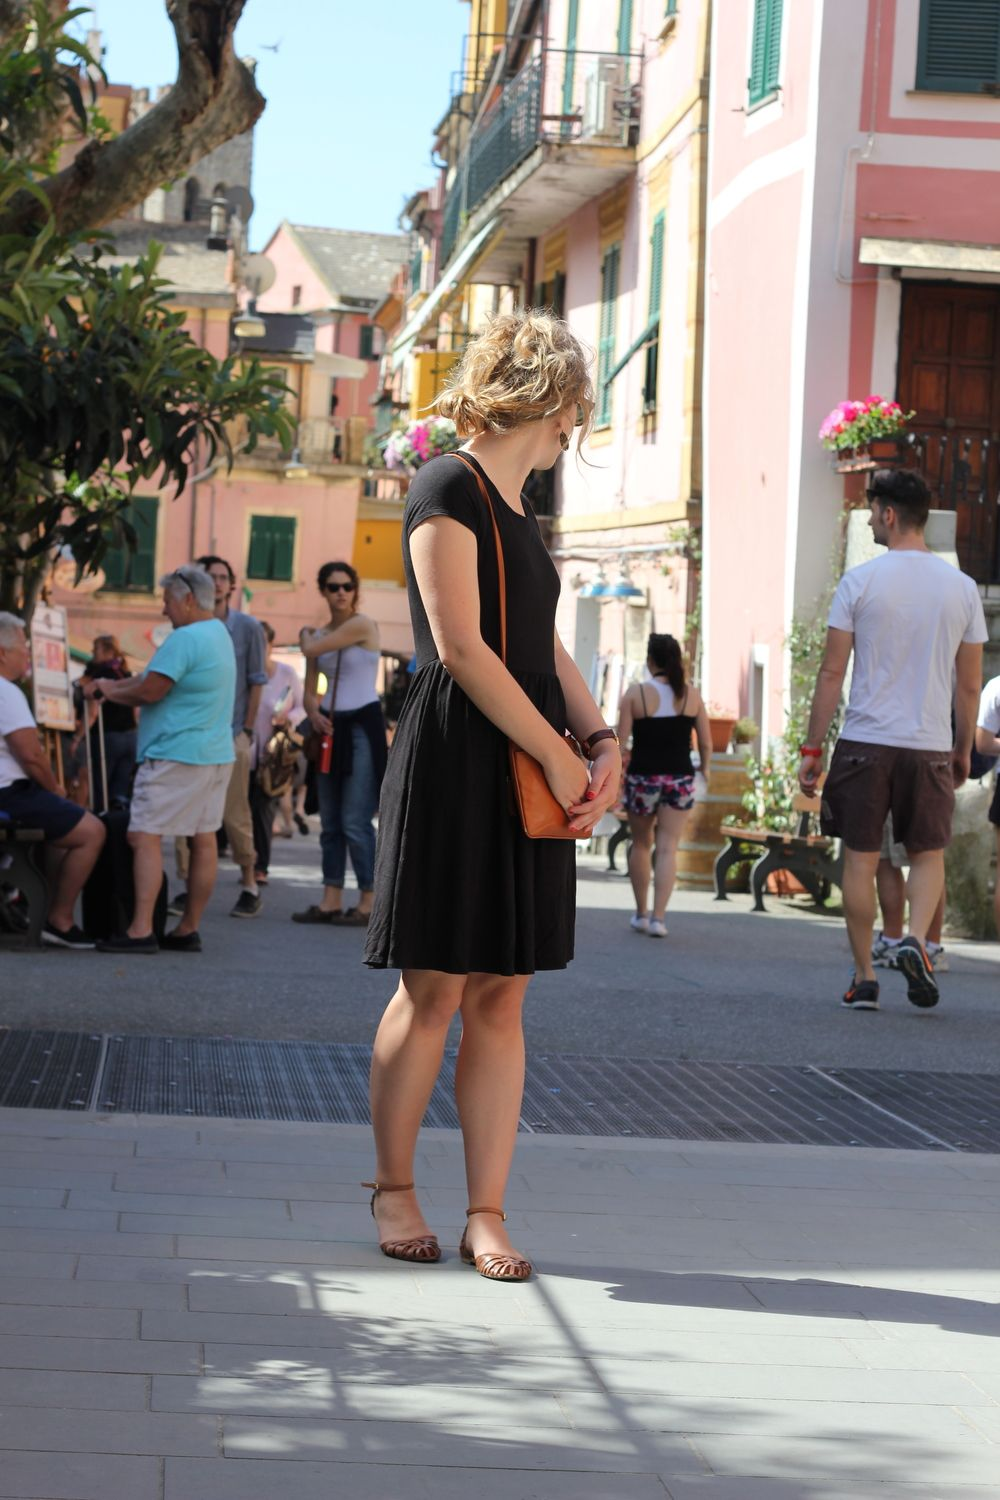 Traipsing through Europe in the Spring - Europe bucket list - the Cinque Terre, travel outfit